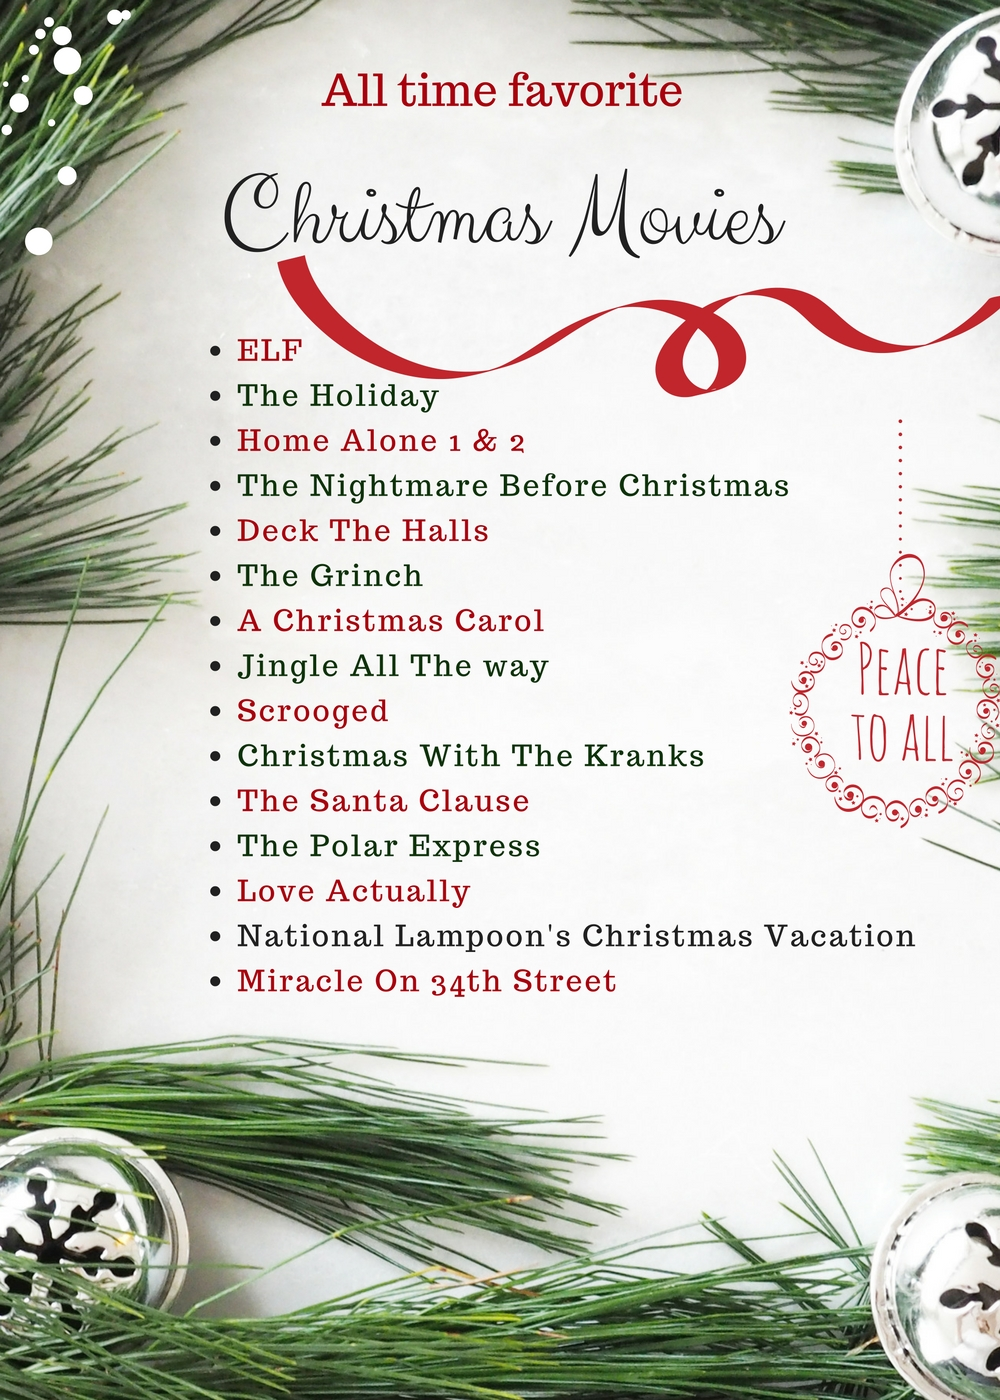 The list of my all time favorite Christmas movies